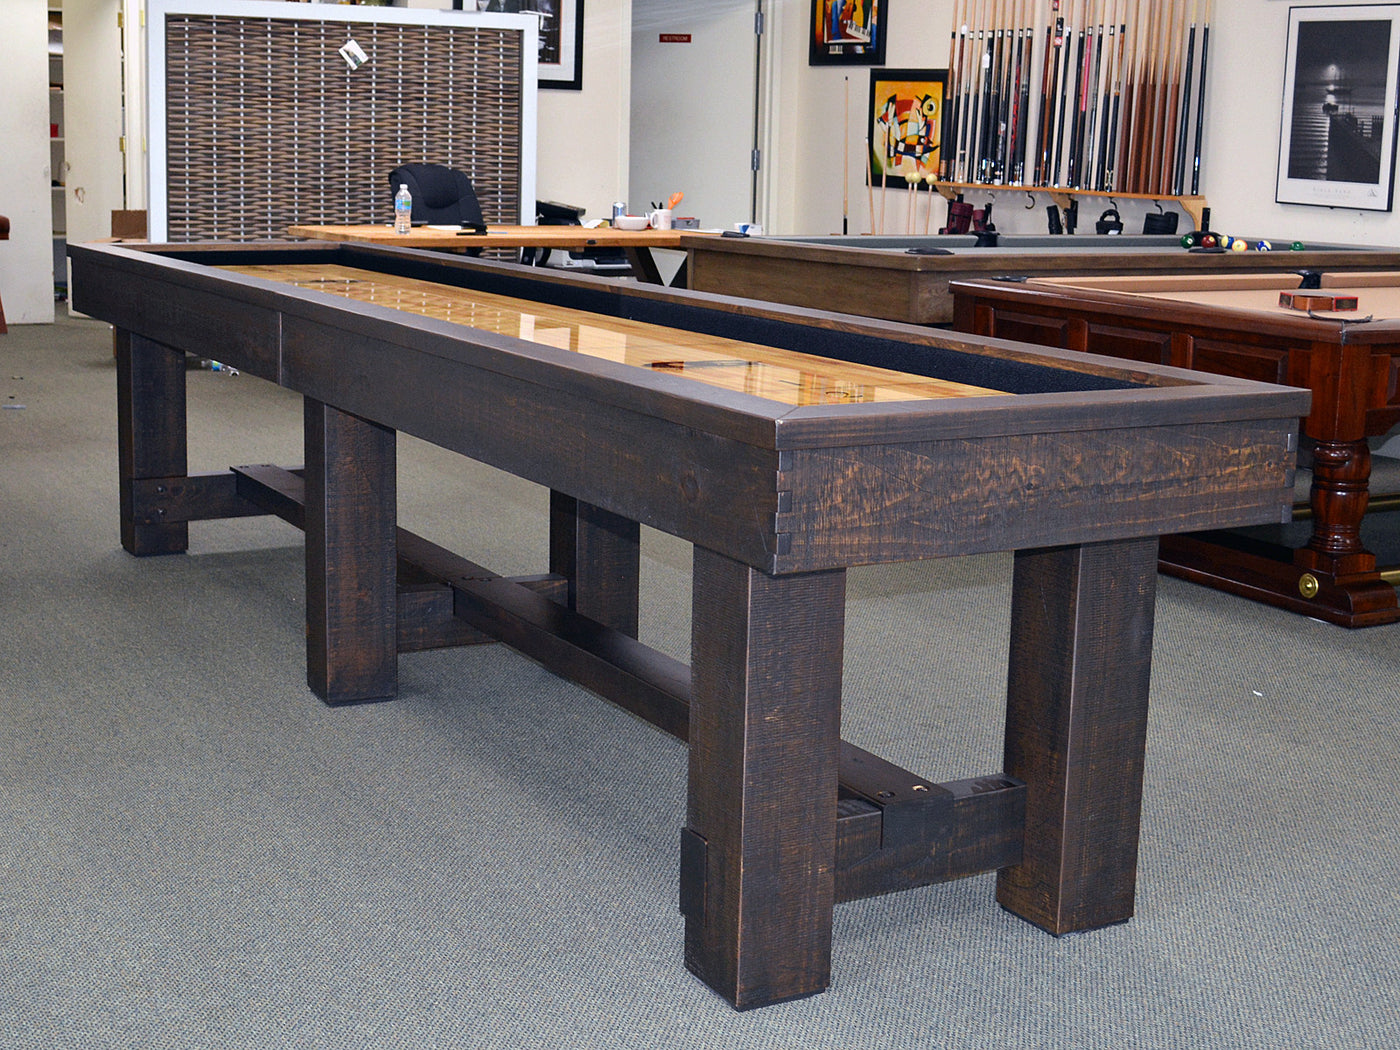 Superb Olhausen Breckenridge Shuffleboard Table